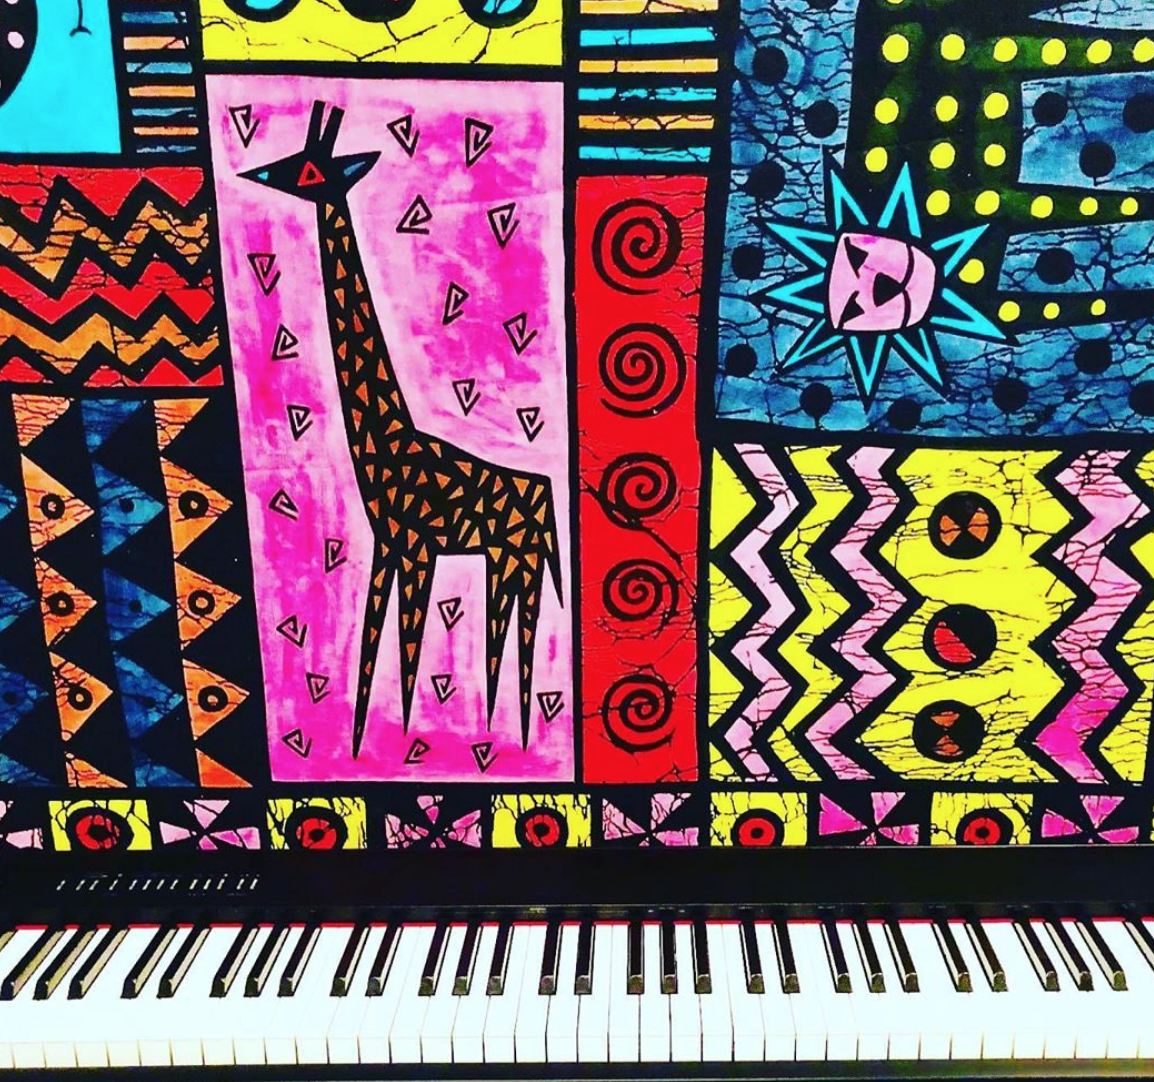 Customized Piano Lessons with Former Pianist, Teacher & Composer From London 4